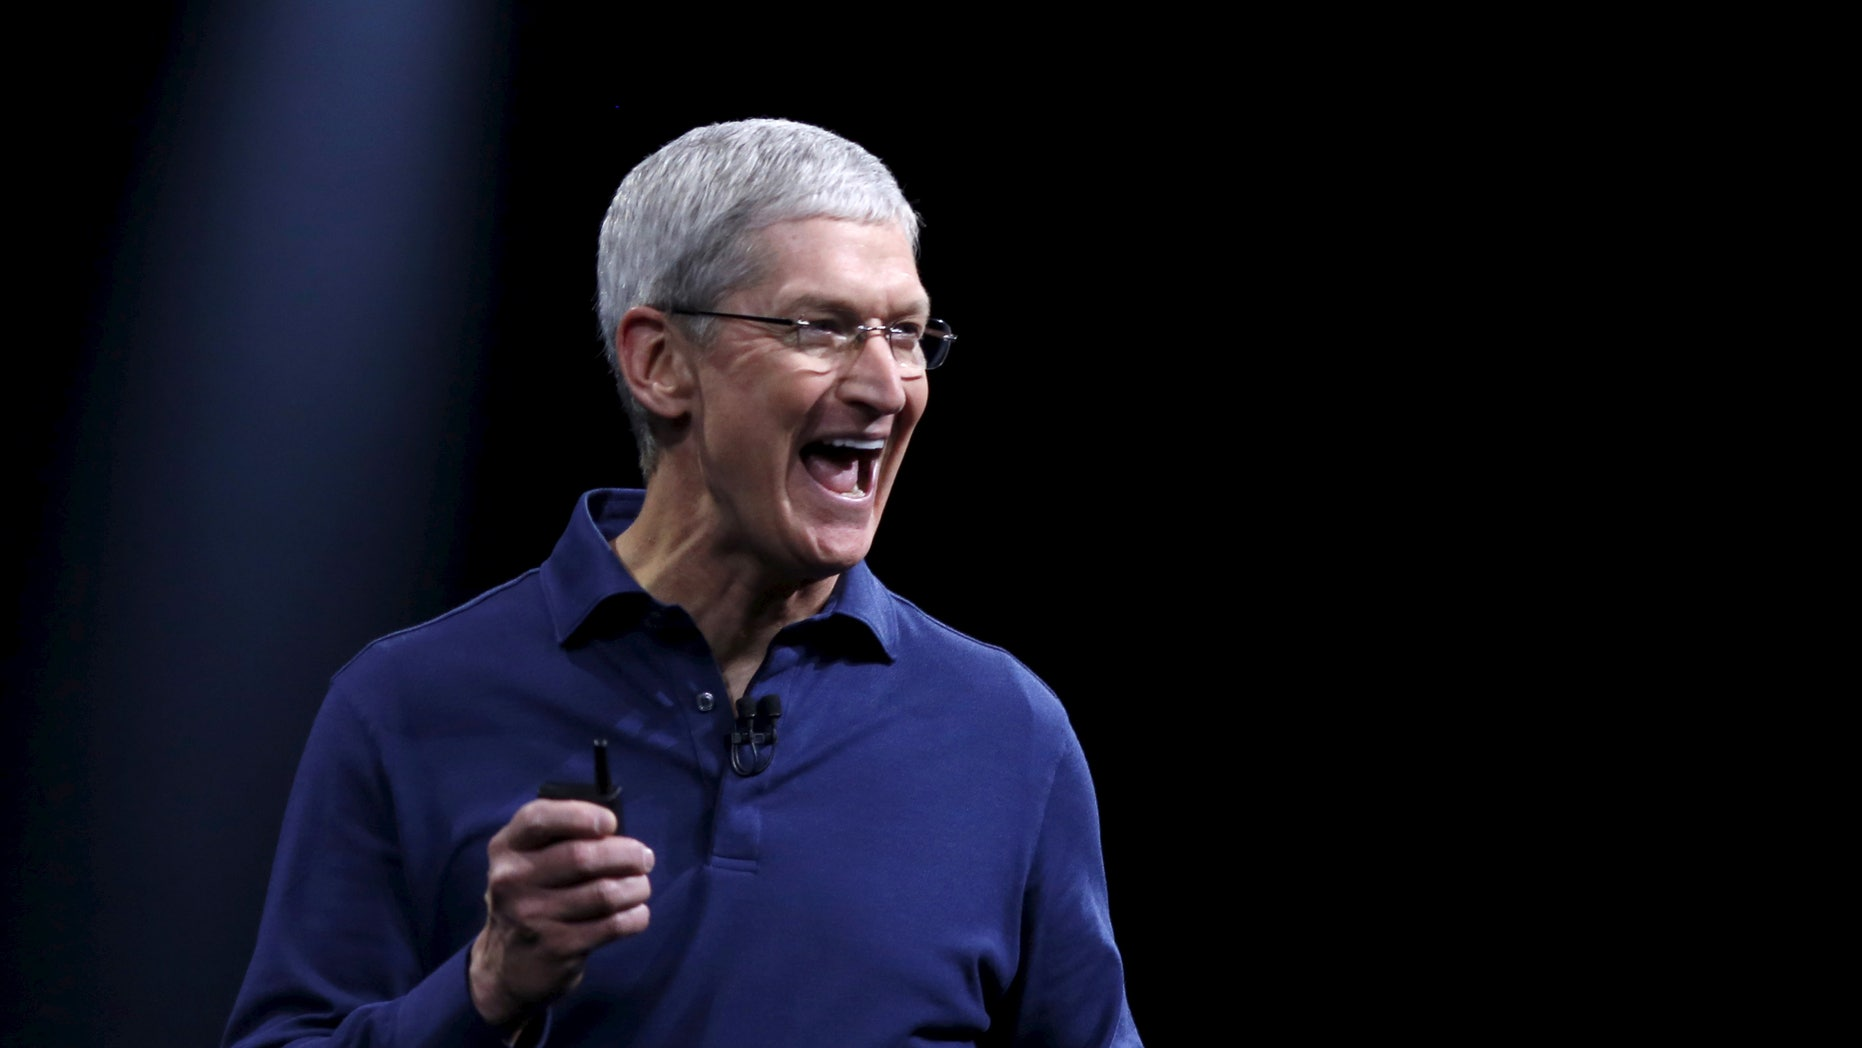 File photo - Apple CEO Tim Cook delivers his keynote address at the Worldwide Developers Conference in San Francisco, California June 8, 2015. (REUTERS/Robert Galbraith)